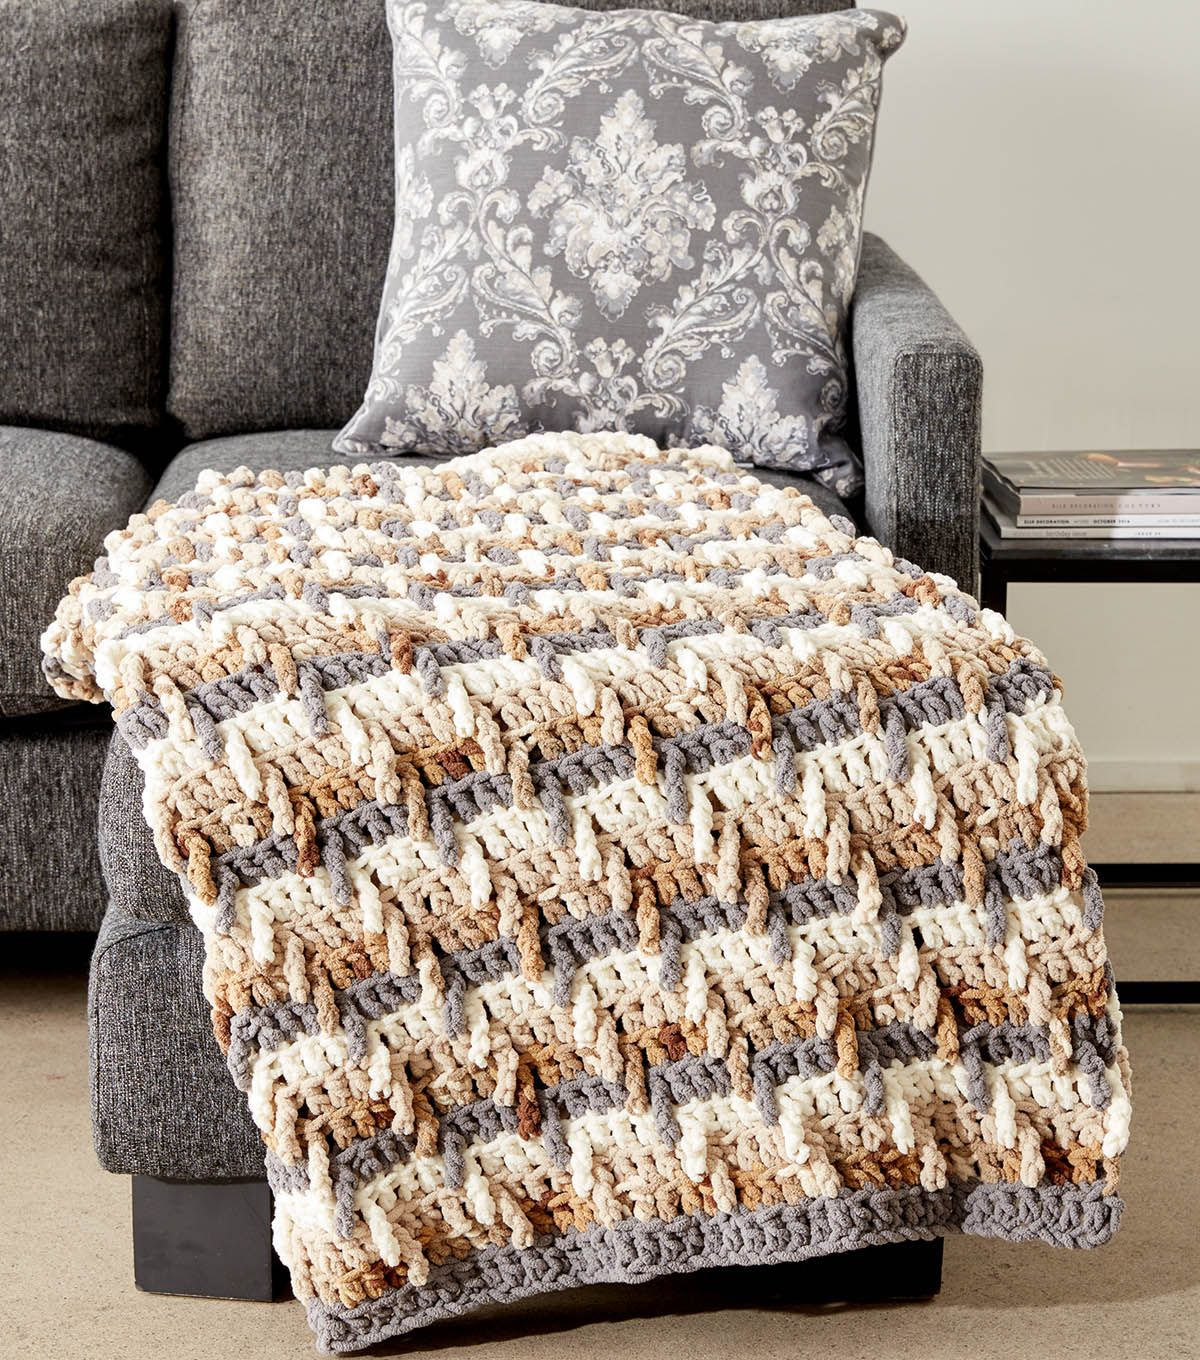 How to make a step ladder crochet blanket crochet pinterest joann crochet projects featuring easy and advanced crochet projects for kids and adults browse joann craft ideas and projects online bankloansurffo Image collections